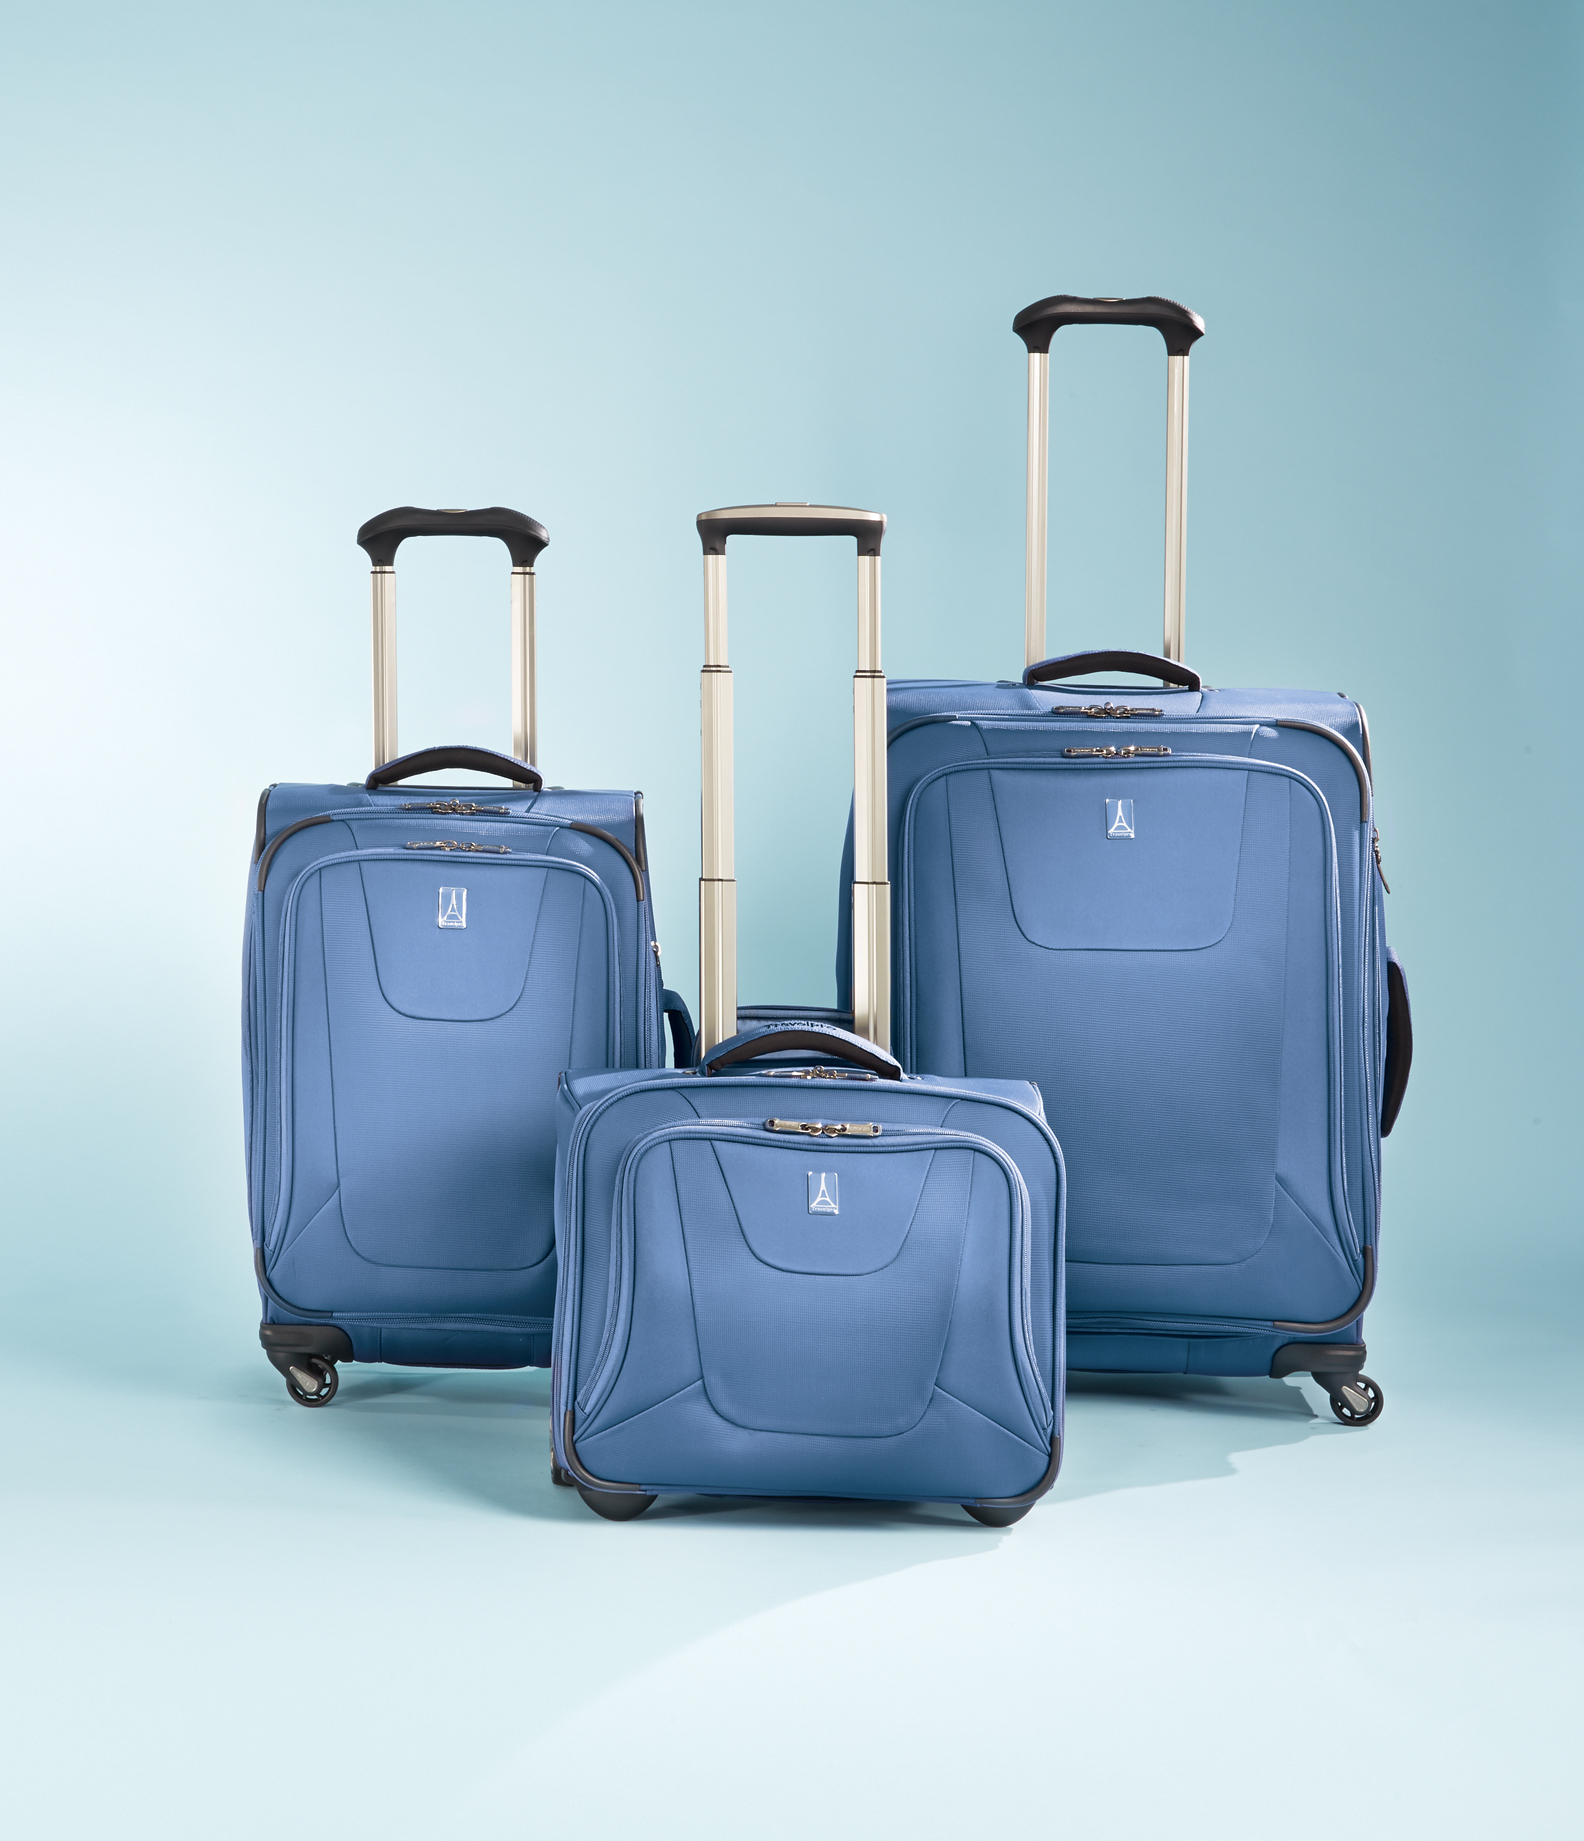 Crew 10 Archives - Travelpro Luggage Blog : Travelpro Luggage Blog